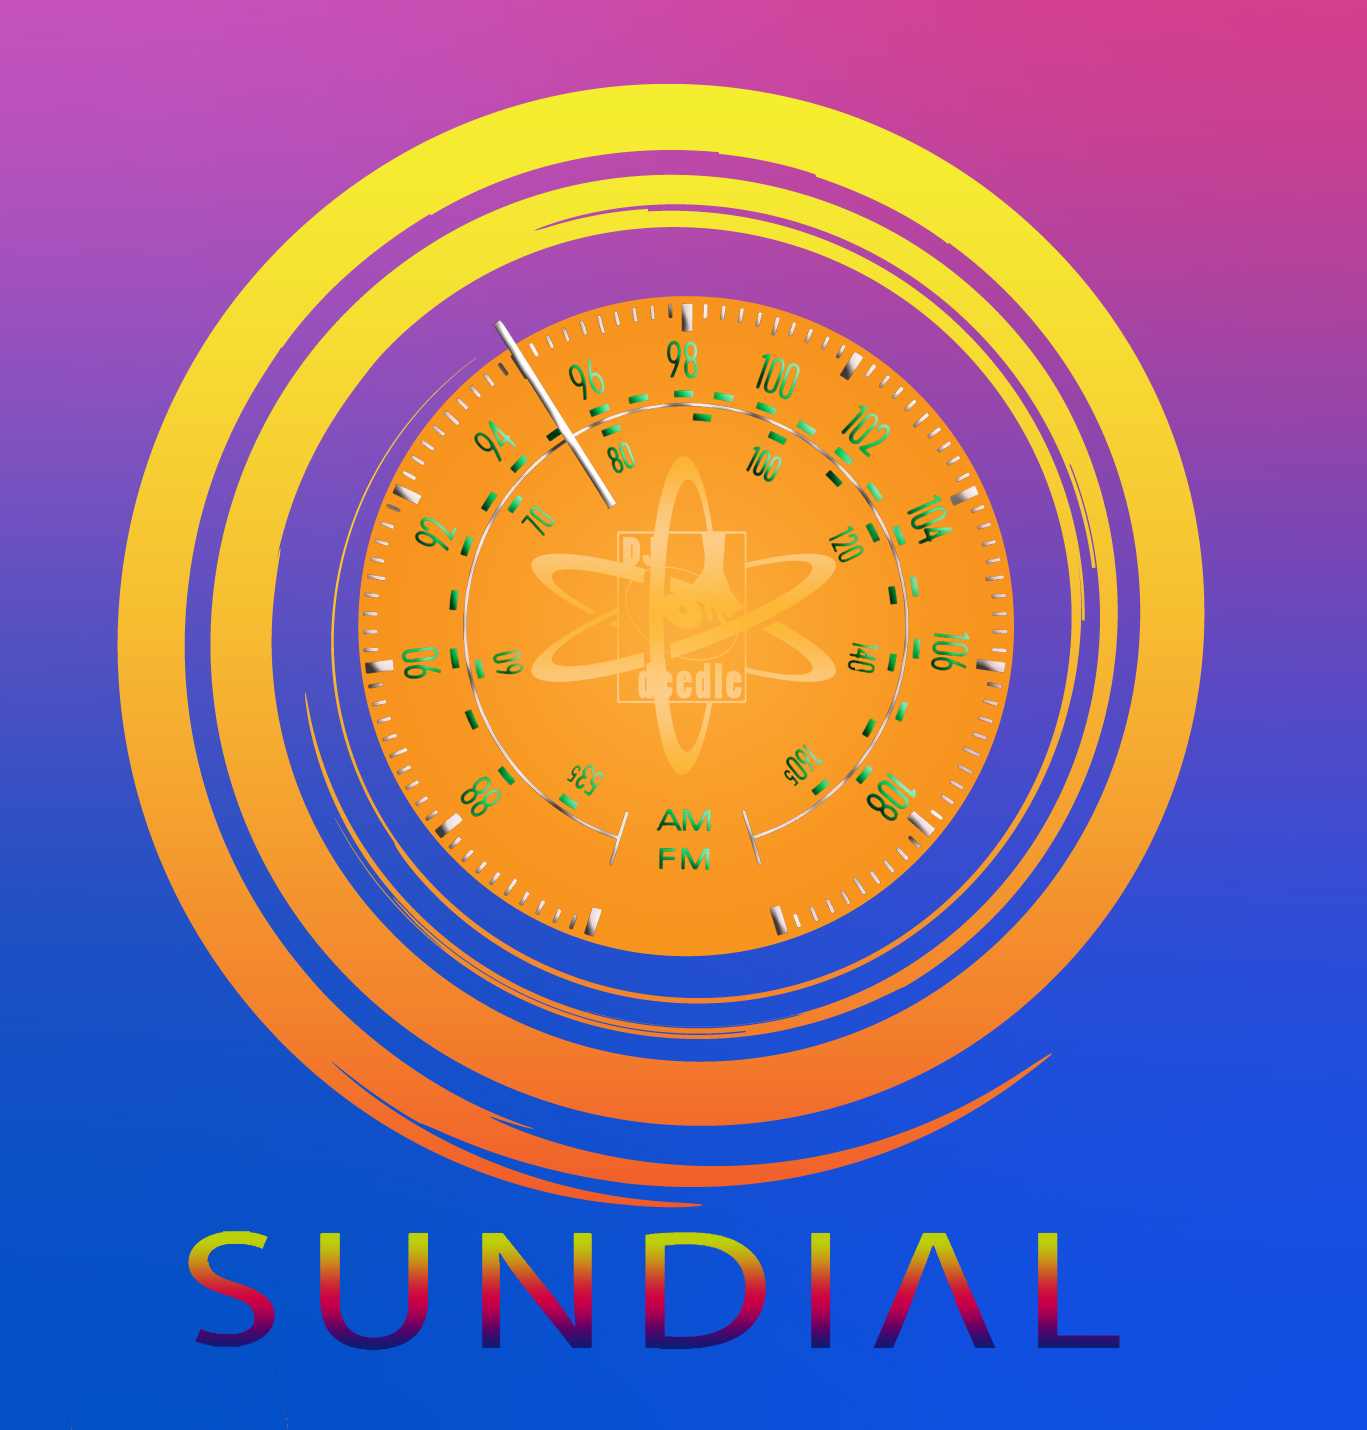 Stylized sun with radio dial inset